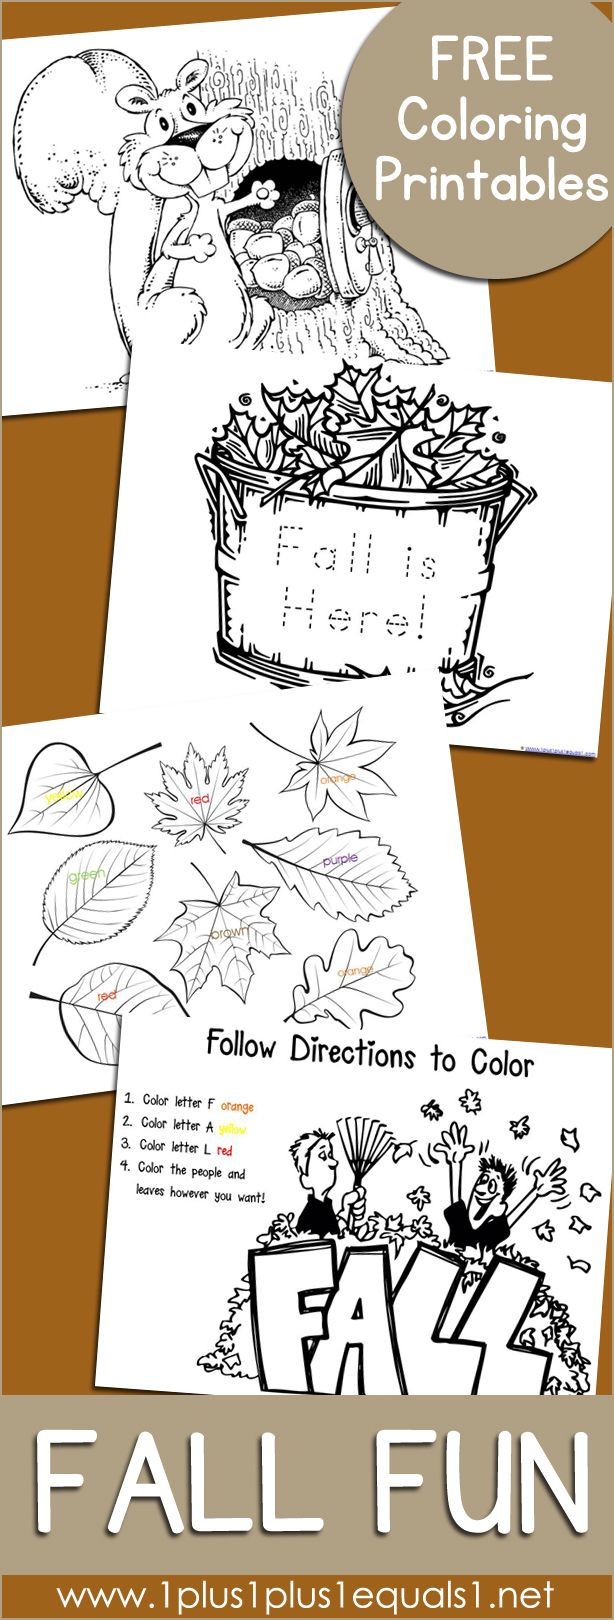 43 best ideas about free coloring printables on pinterest